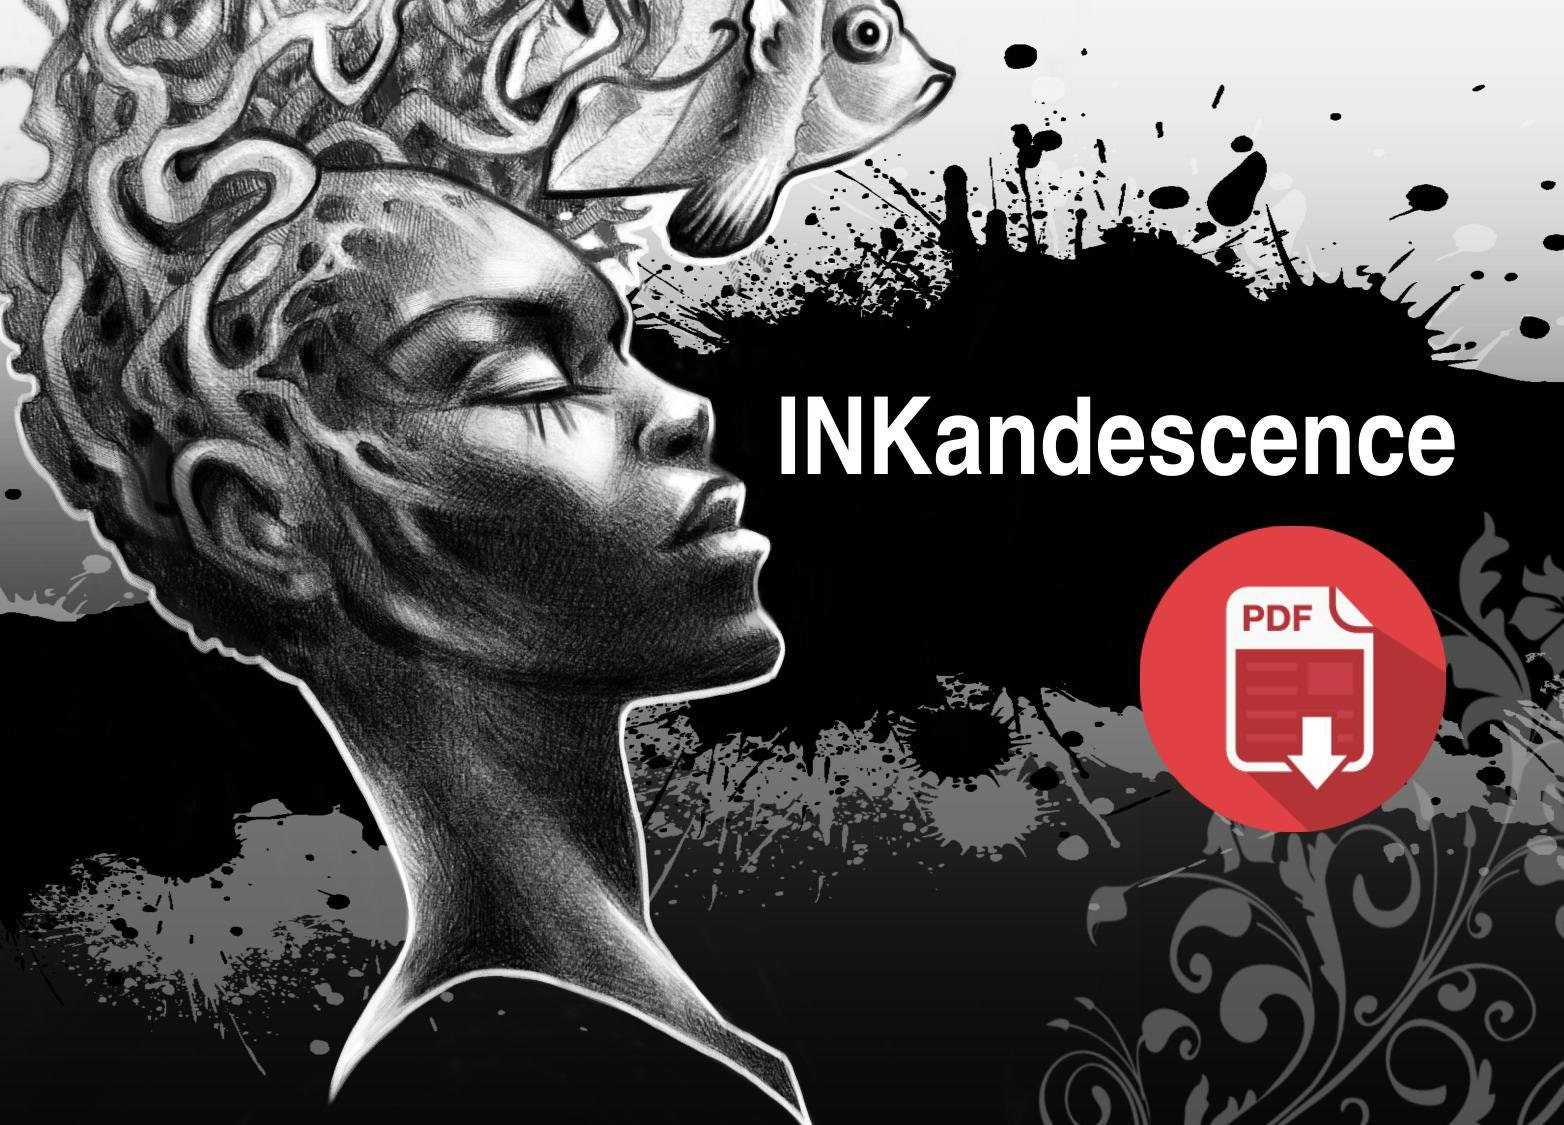 Inkandescence - Art book to color